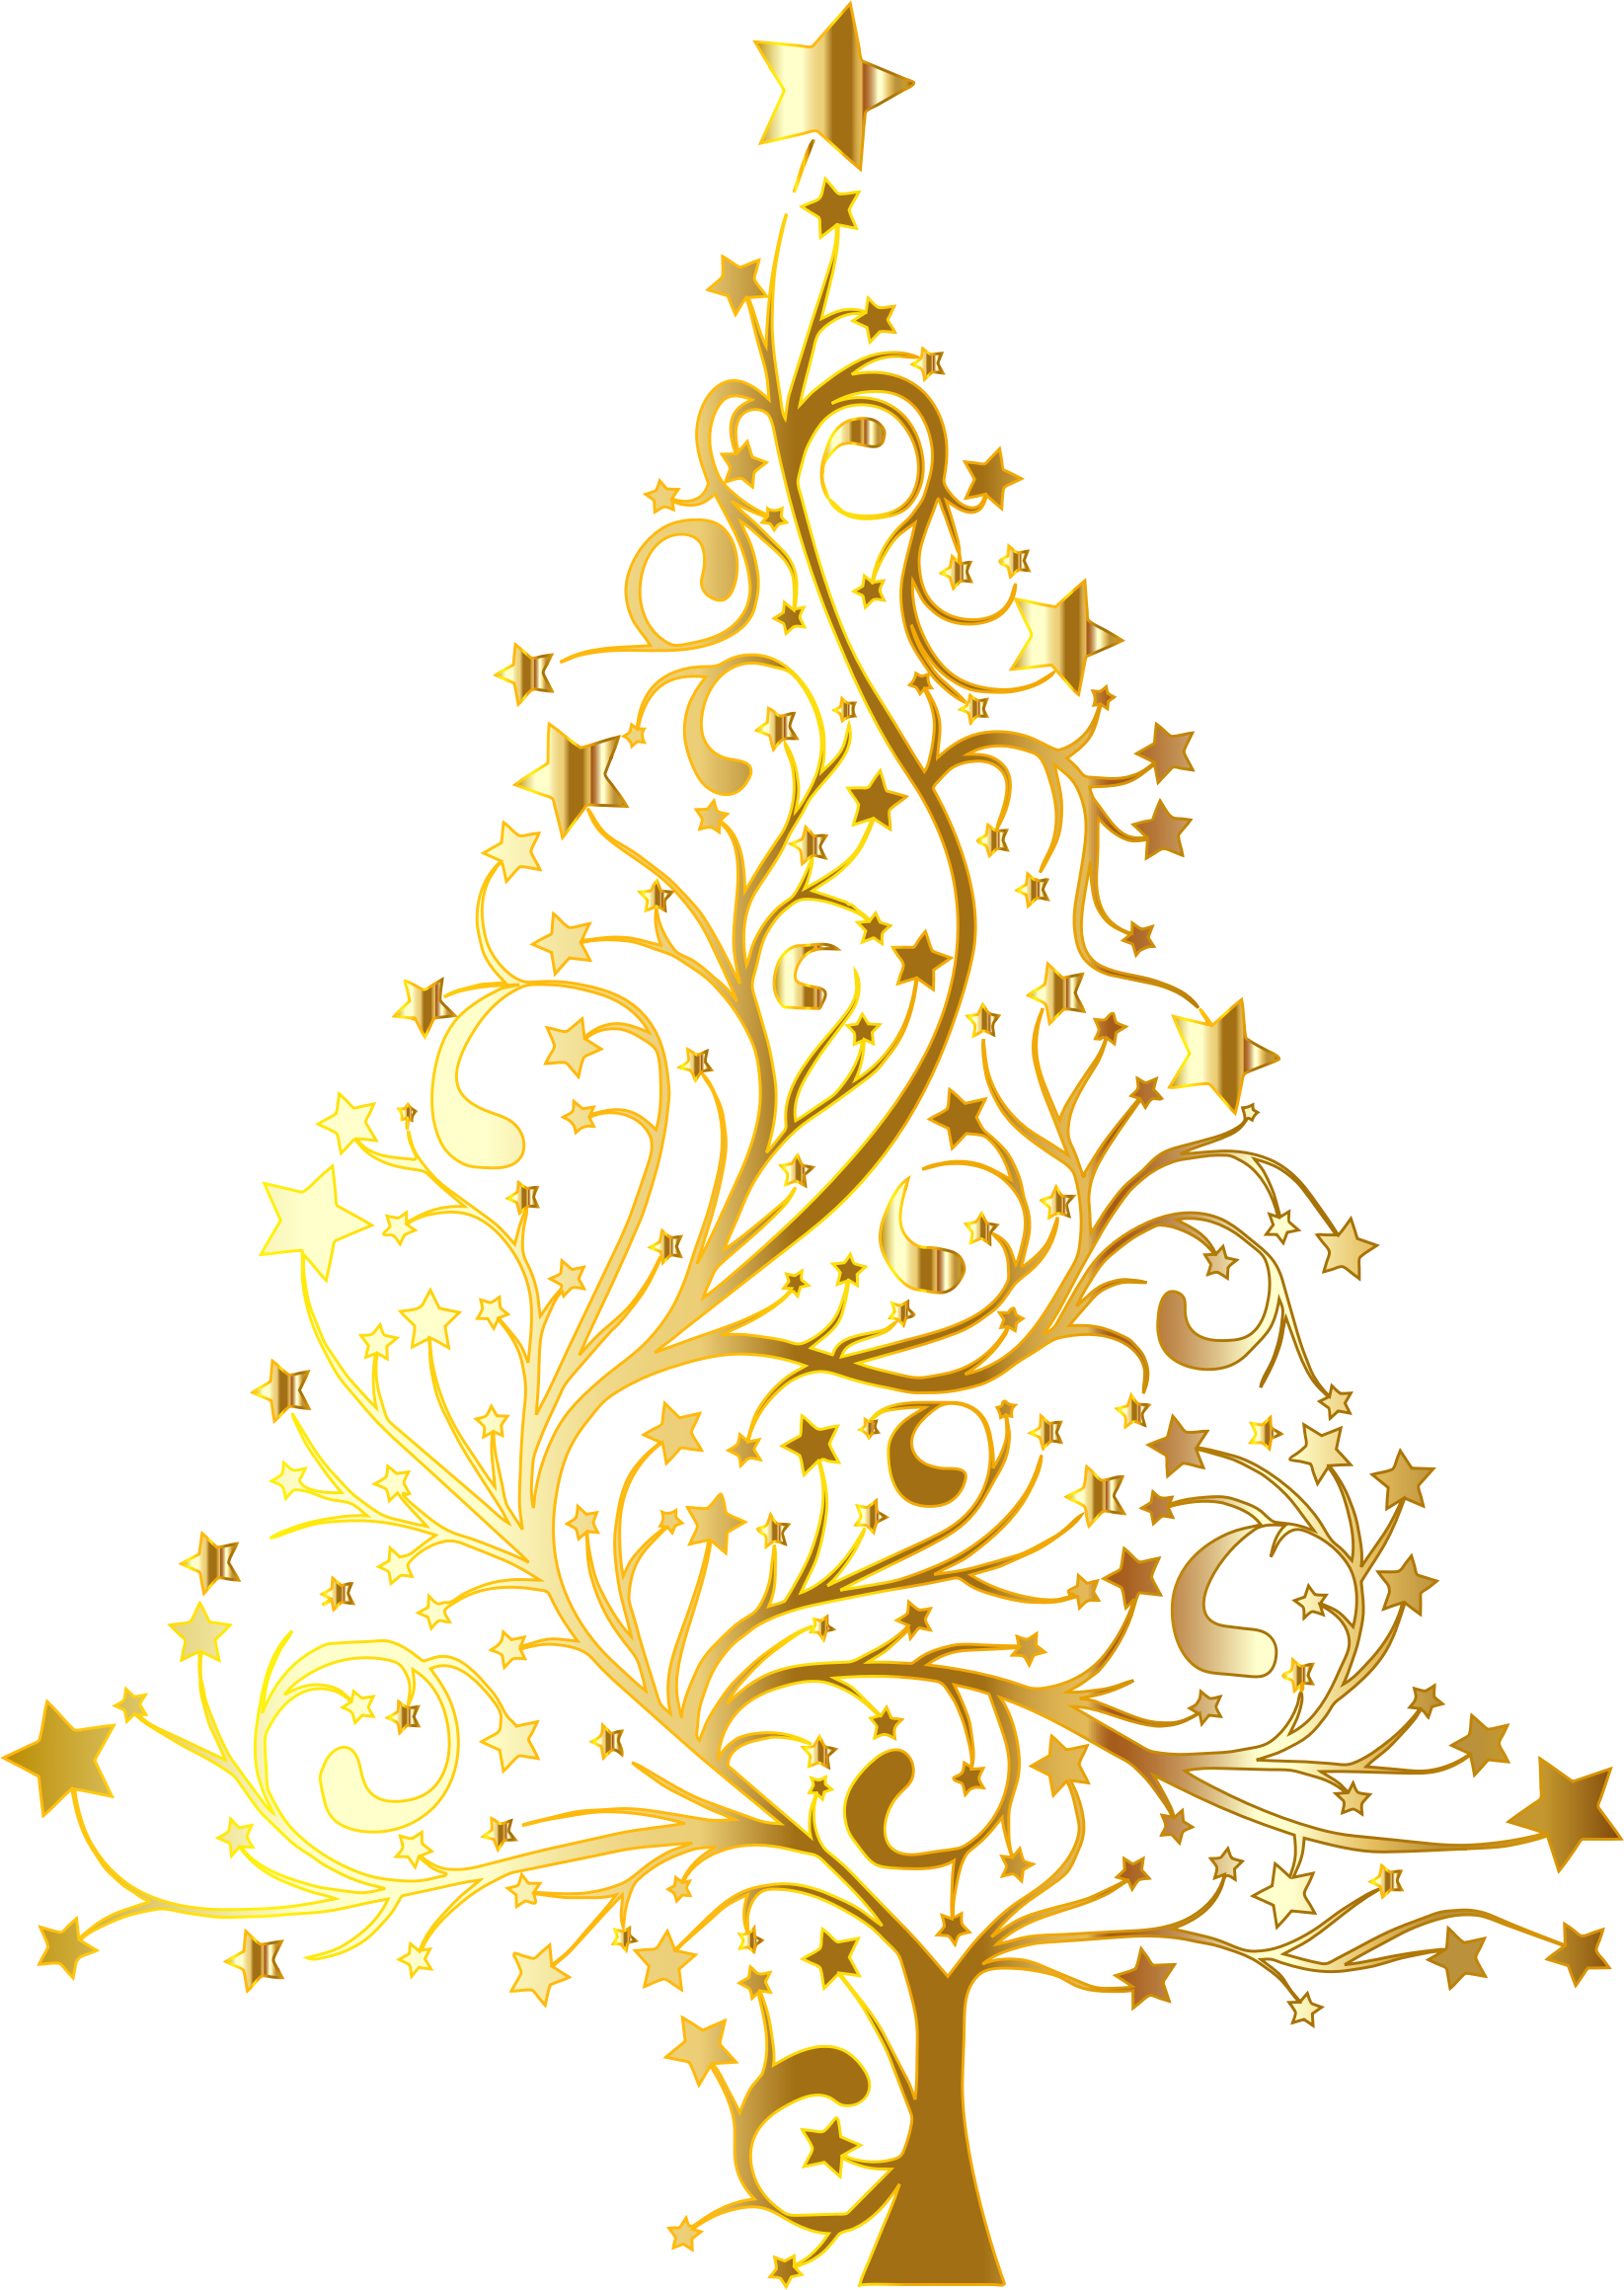 Stick tree clipart clip art black and white download Starry Christmas Tree Gold No Background by GDJ | Christmas ... clip art black and white download